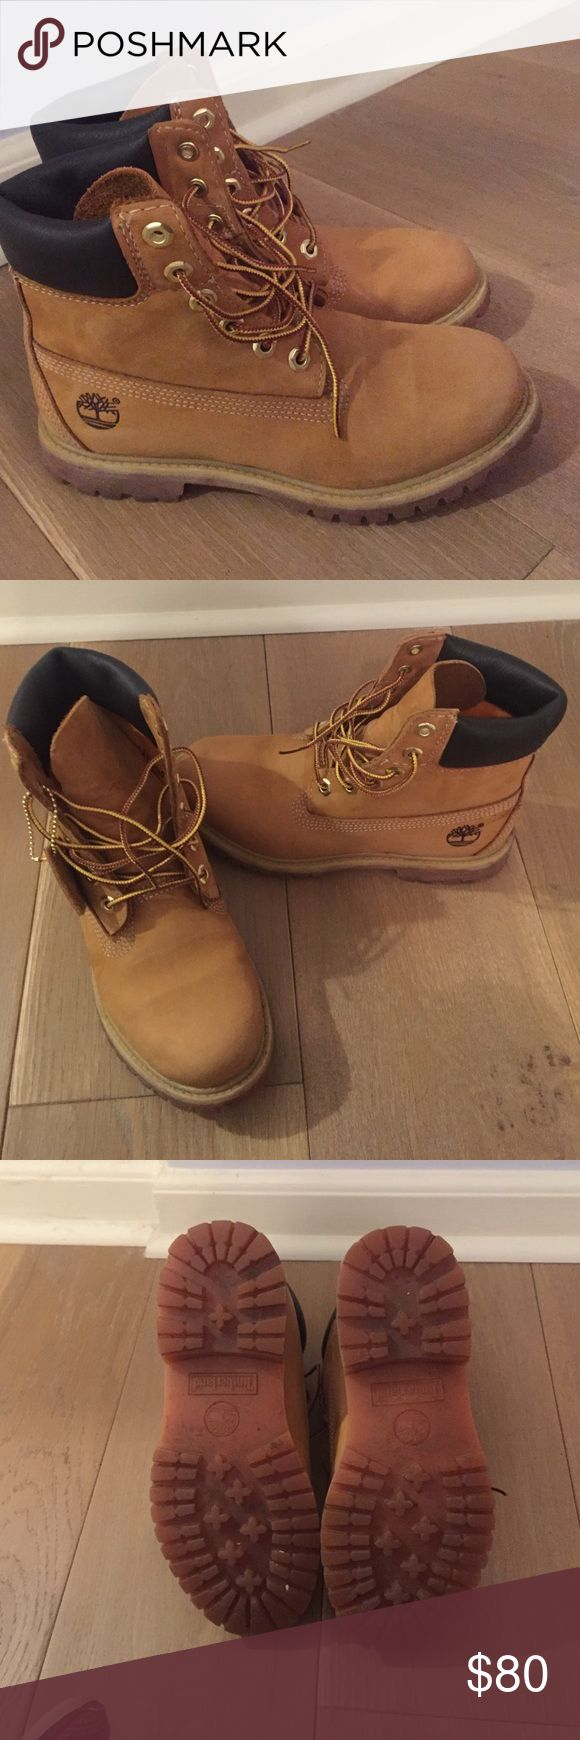 Classic Wheat Timberlands Authentic Timberland boots, worn once just to school, I realized I didn't like the way they looked on me so I decided to sell them! They're in perfect condition and still have the Timberland tag on them. I am willing to trade for a pair in a different color if you're interested! price is also flexible. 🔸If you want the price lower just put in an offer or comment down below!🔸SIZE 6.5 WOMENS Timberland Shoes